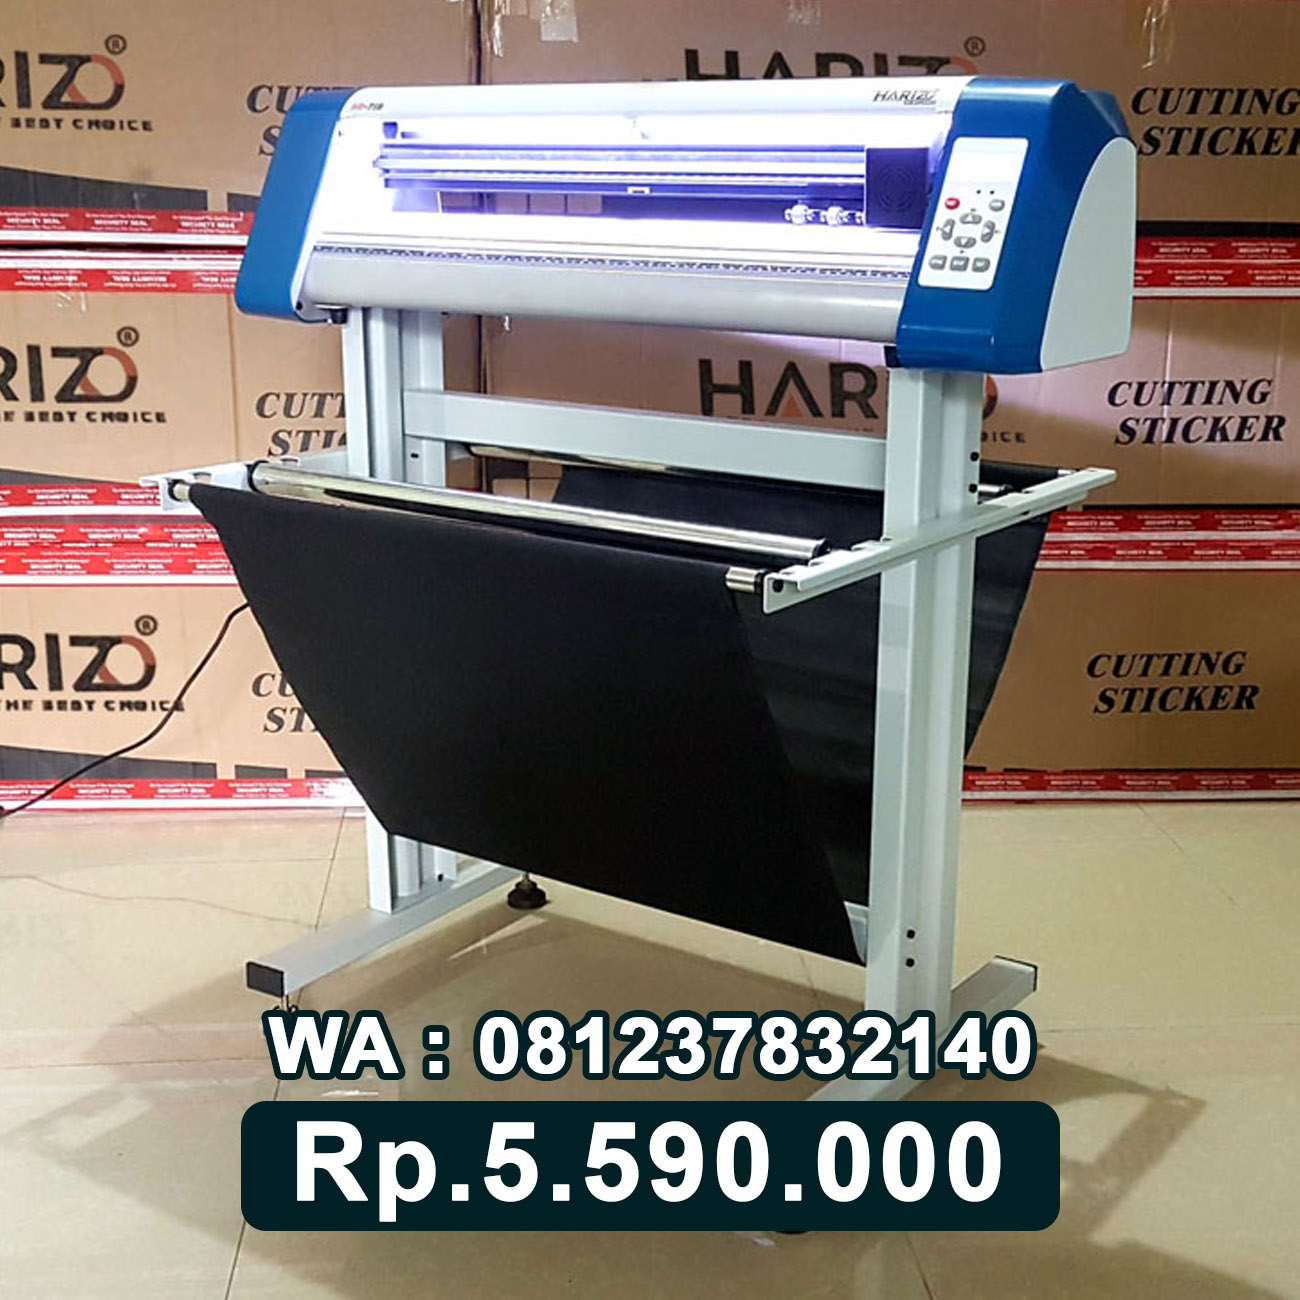 JUAL MESIN CUTTING STICKER HARIZO 720 Bima